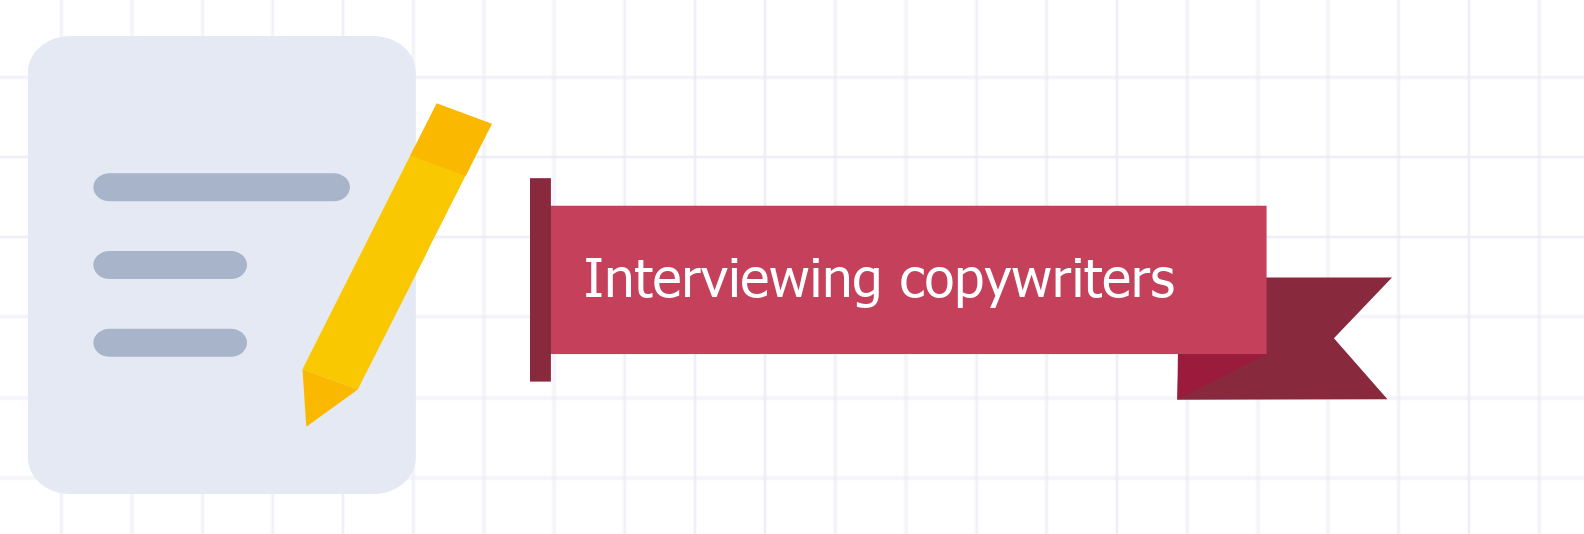 how to interview copywriters